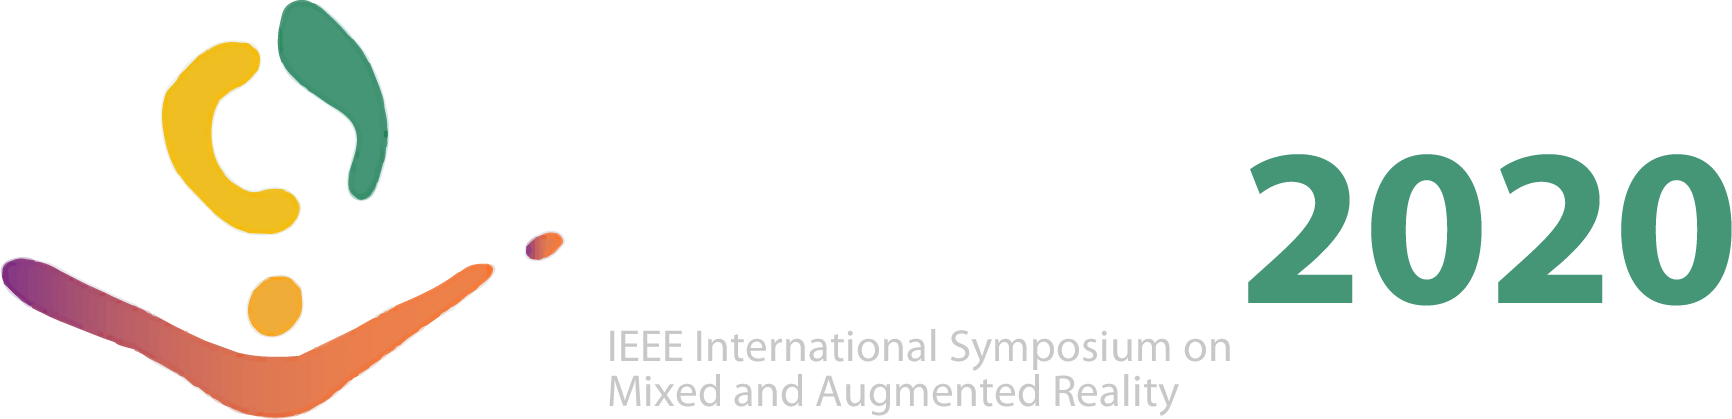 ISMAR 2020 – International Symposium on Mixed and Augmented Reality